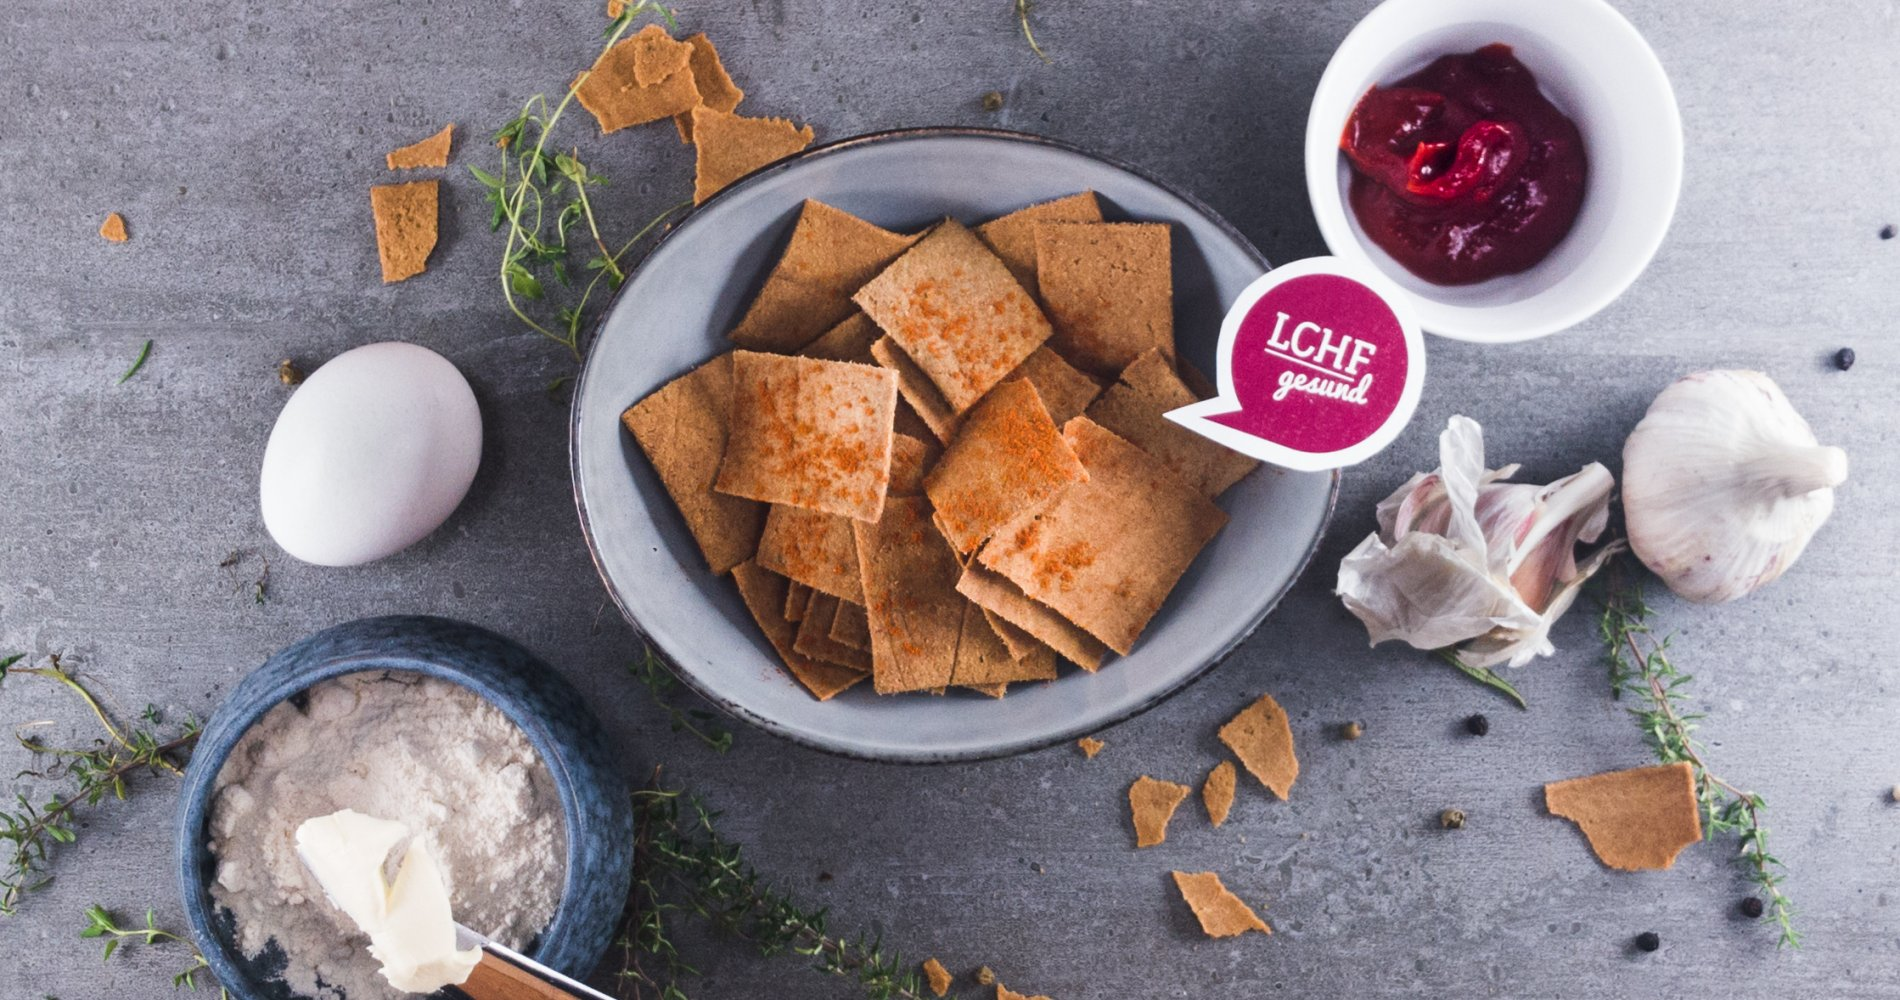 Low Carb: Würzige Cracker mexican Style - ♥ Knusper knusper – snacken geht auch Low Carb! Mexikanische Taccos für den Freitagabend und dazu fruchtiges Ketchup zum Dippen. - LCHF-gesund.de